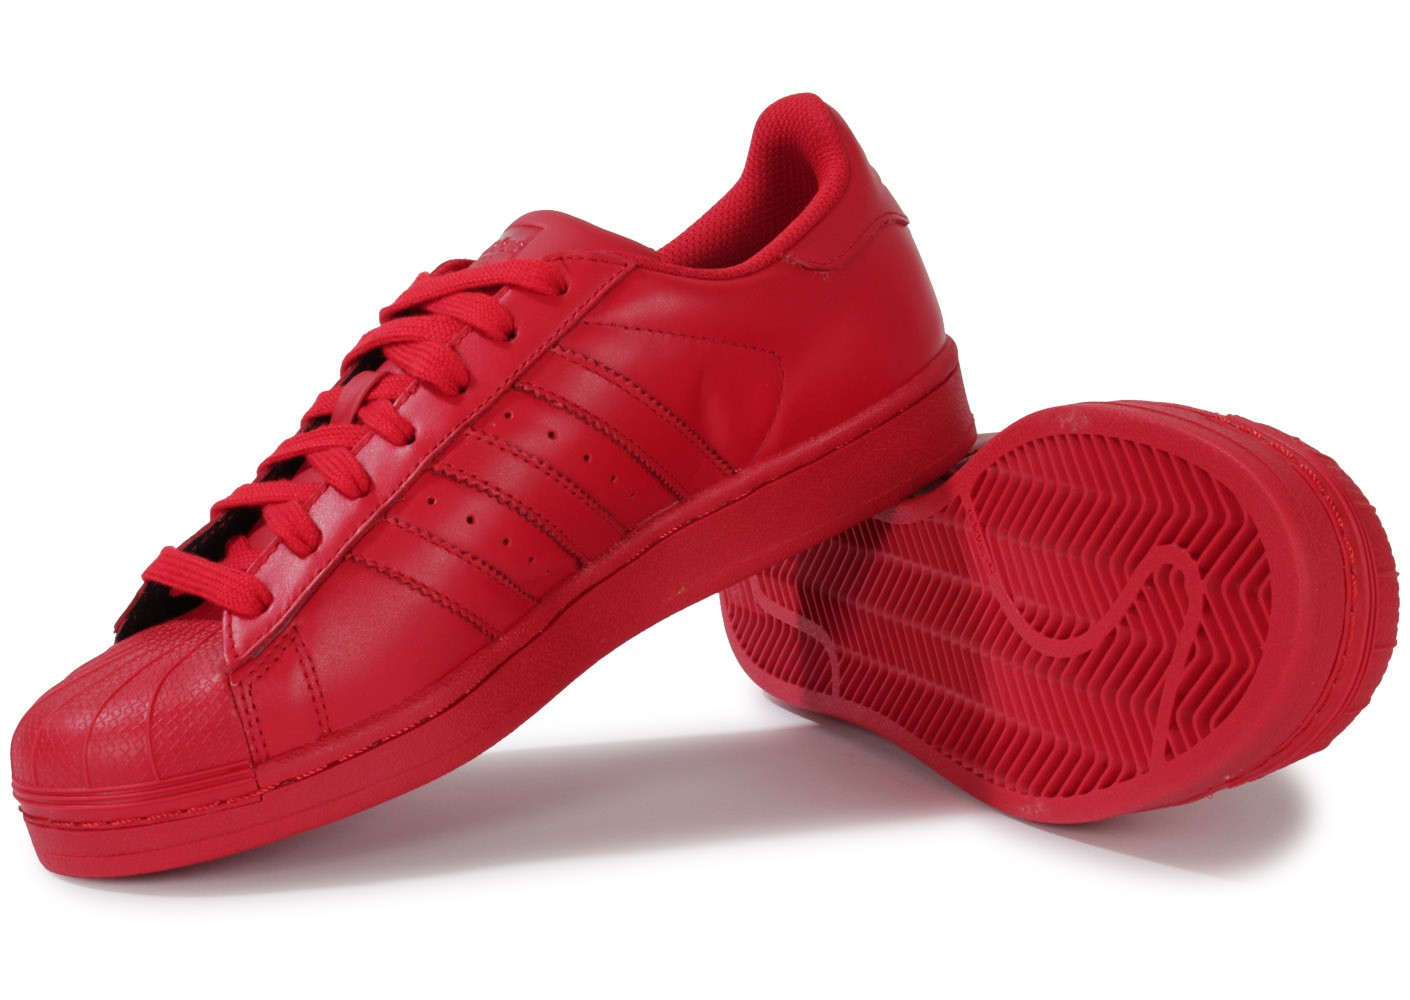 adidas superstar rouge glossy